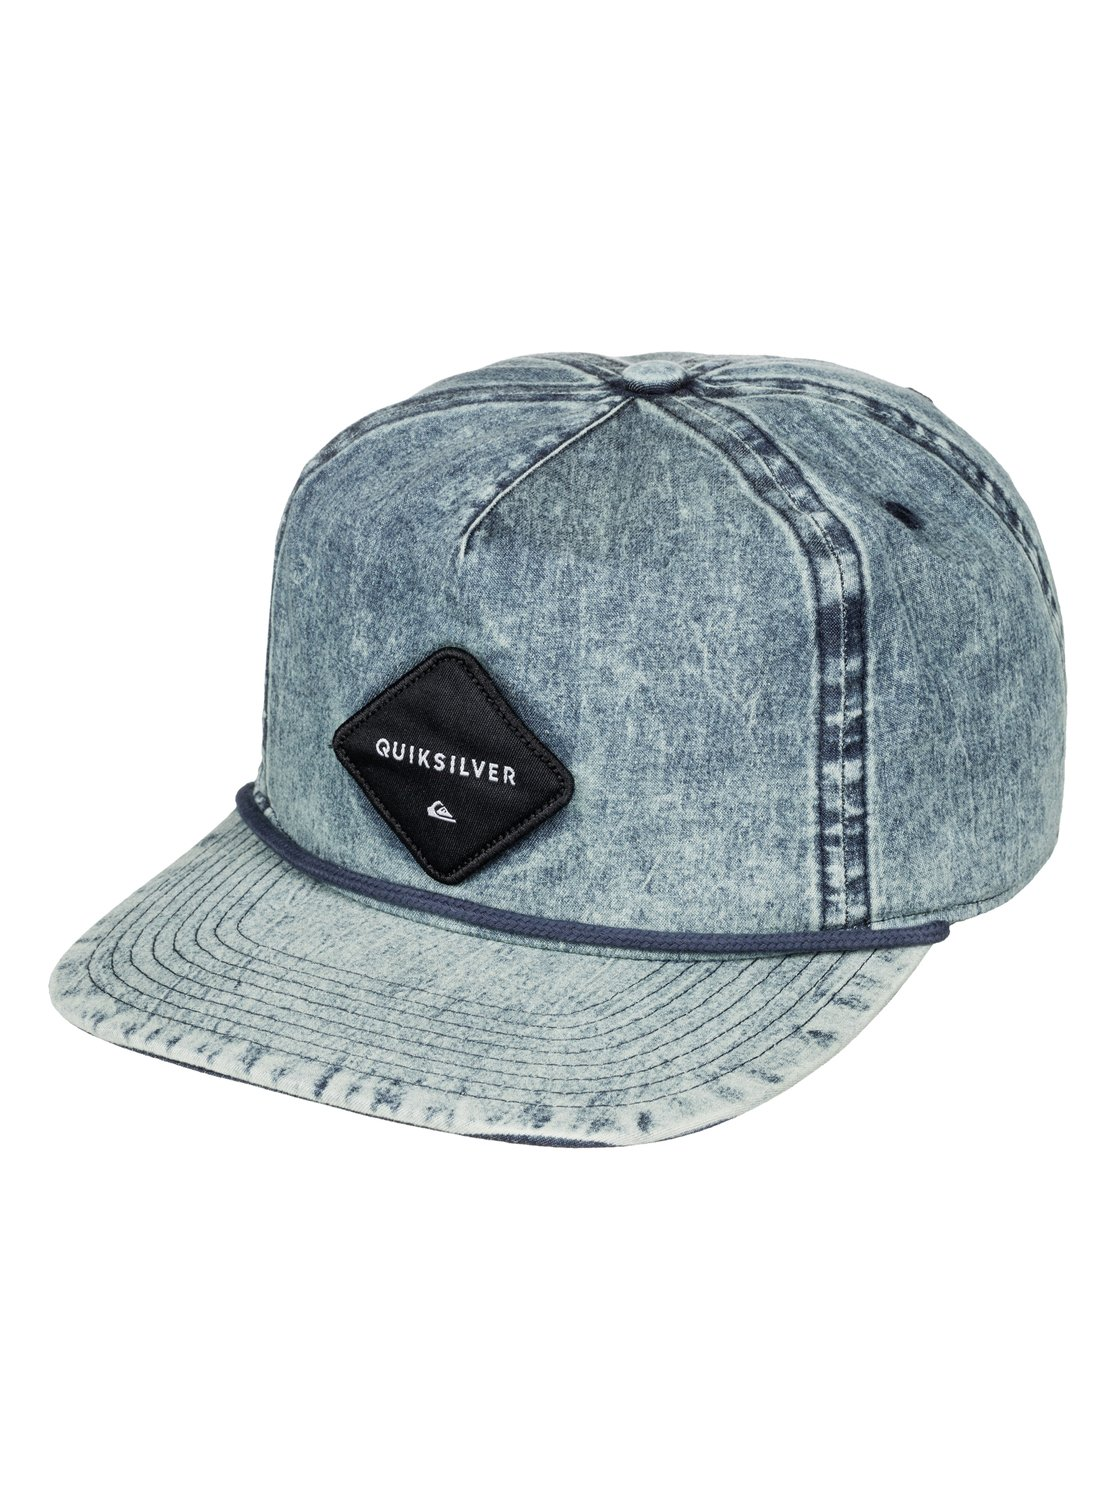 d9fedbcd clearance quiksilver country snapback cap 30150 c3a71